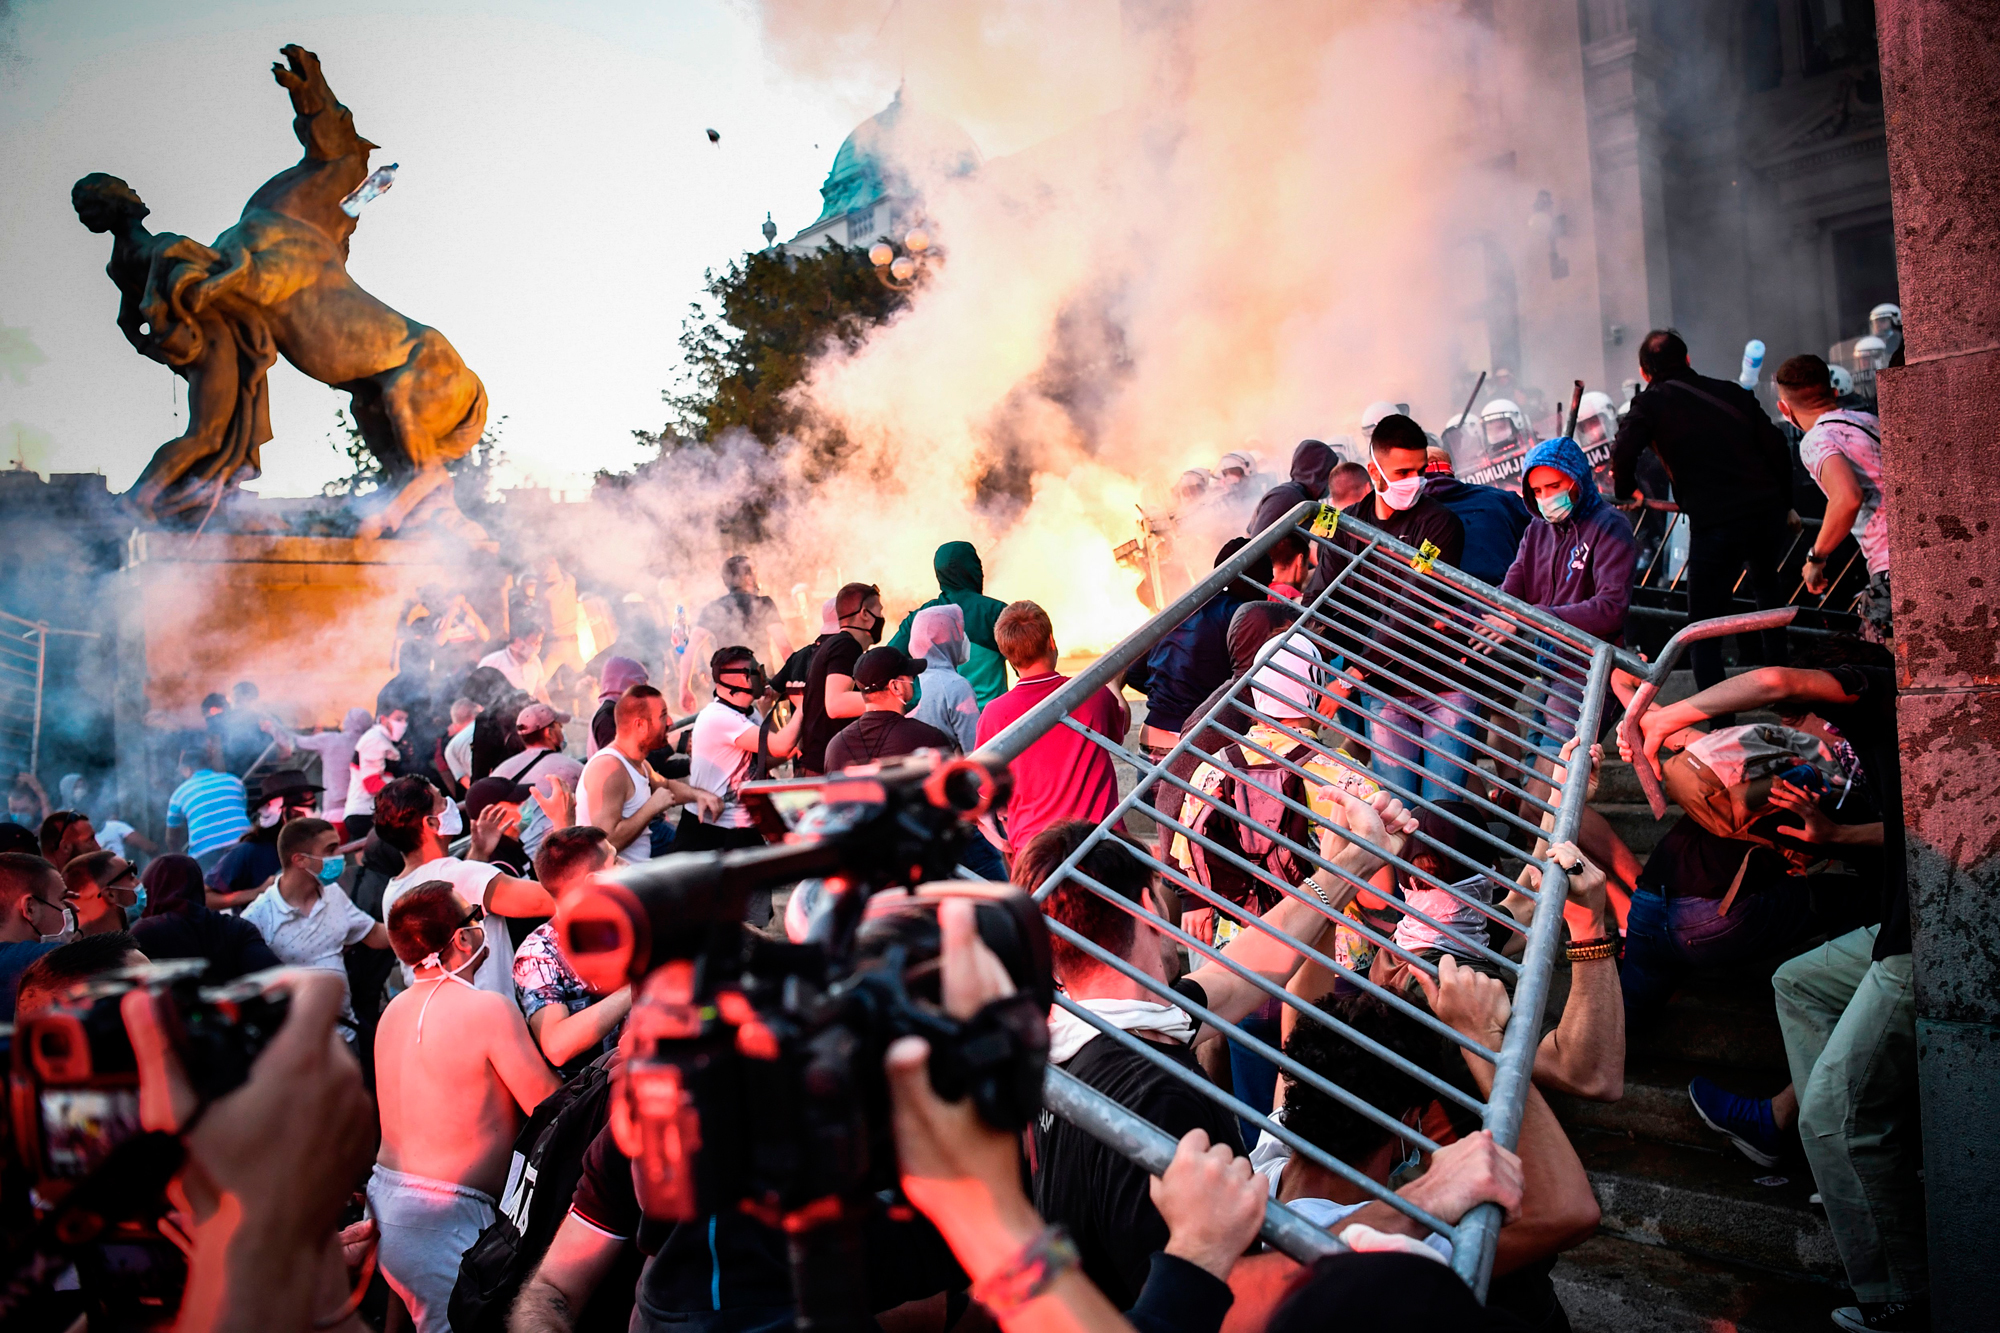 Protesters clash with police in front of Serbia's National Assembly building in Belgrade on July 8 during a demonstration against a weekend curfew announced to combat a resurgence of COVID-19 infections. (Andrej Isakovic/AFP via Getty Images)